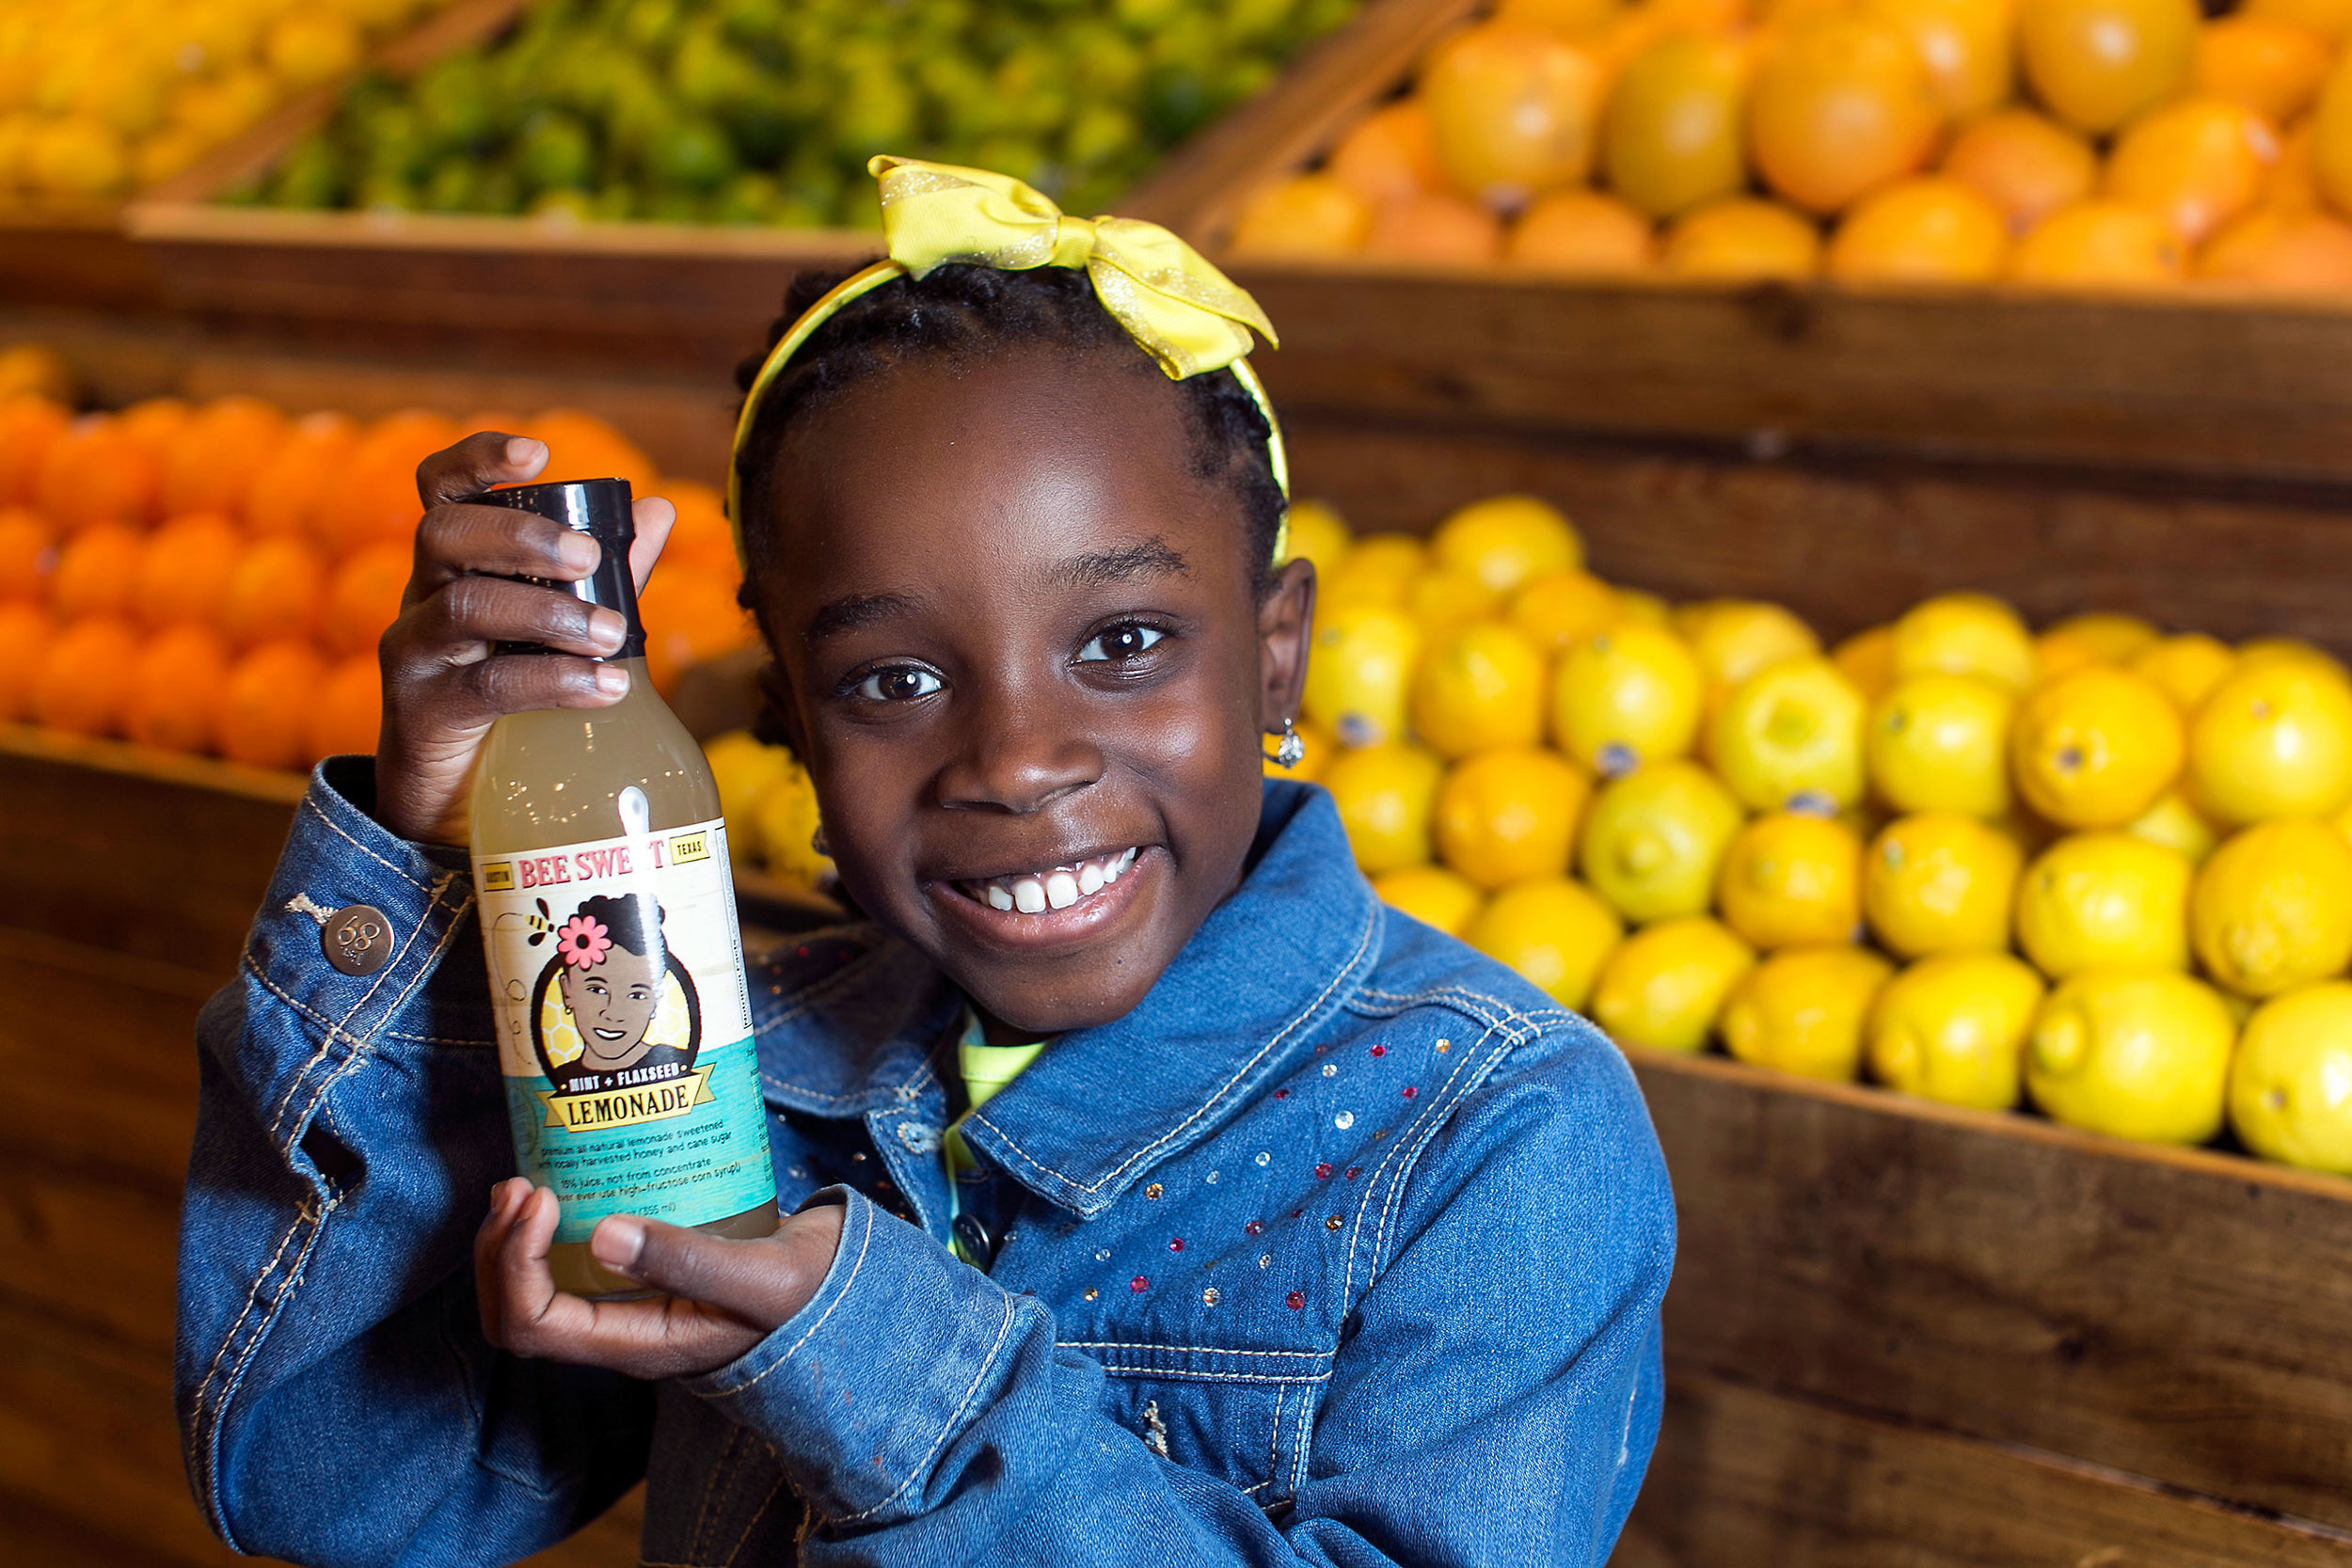 Mikaila Ulmer   is an Austin, Texas native, who was inspired by her great grandmother Helen's flaxseed lemonade to come up with her own lemonade. Ulmer created Me & the Bees Lemonade, which is a flaxseed and mint infused beverage that is sweetened with honey from local honeybees. Ulmer donates a percentage of her profits to organizations working with bees including her home state's beekepers association. In 2009, when Makaila first started, she sold her lemonade at a local pizzeria.  Currently, her product can be found in Whole Foods throughout the southeast region.